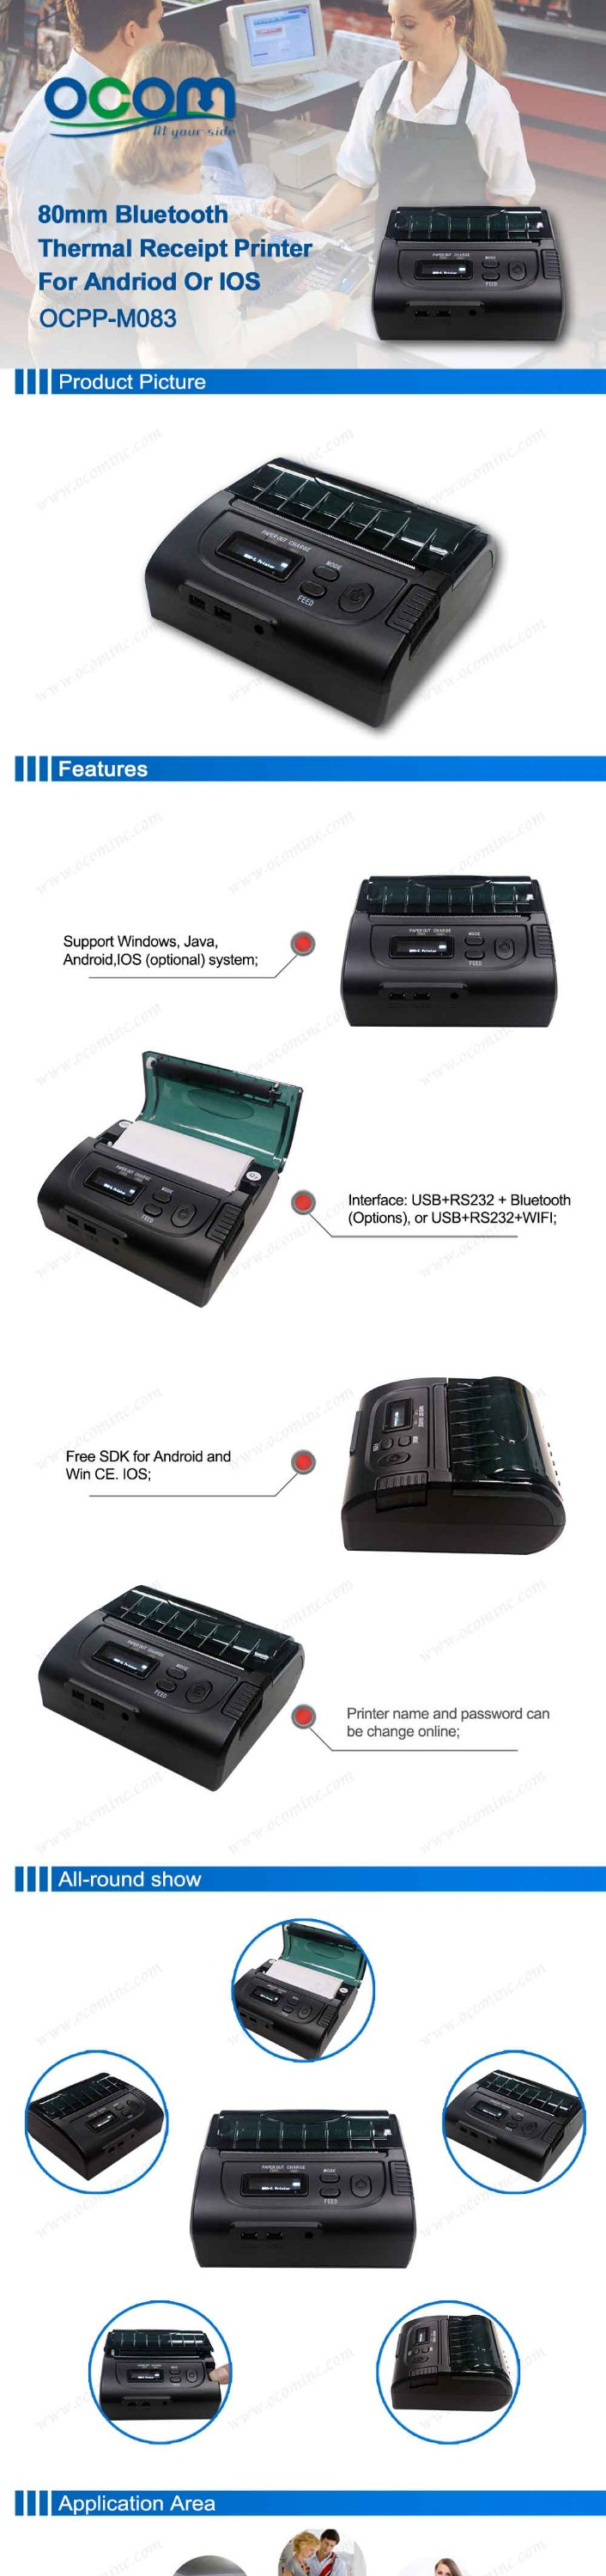 Android Bluetooth Receipt Printer 80MM USB Receiptprinter Bluetooth Thermal Printer